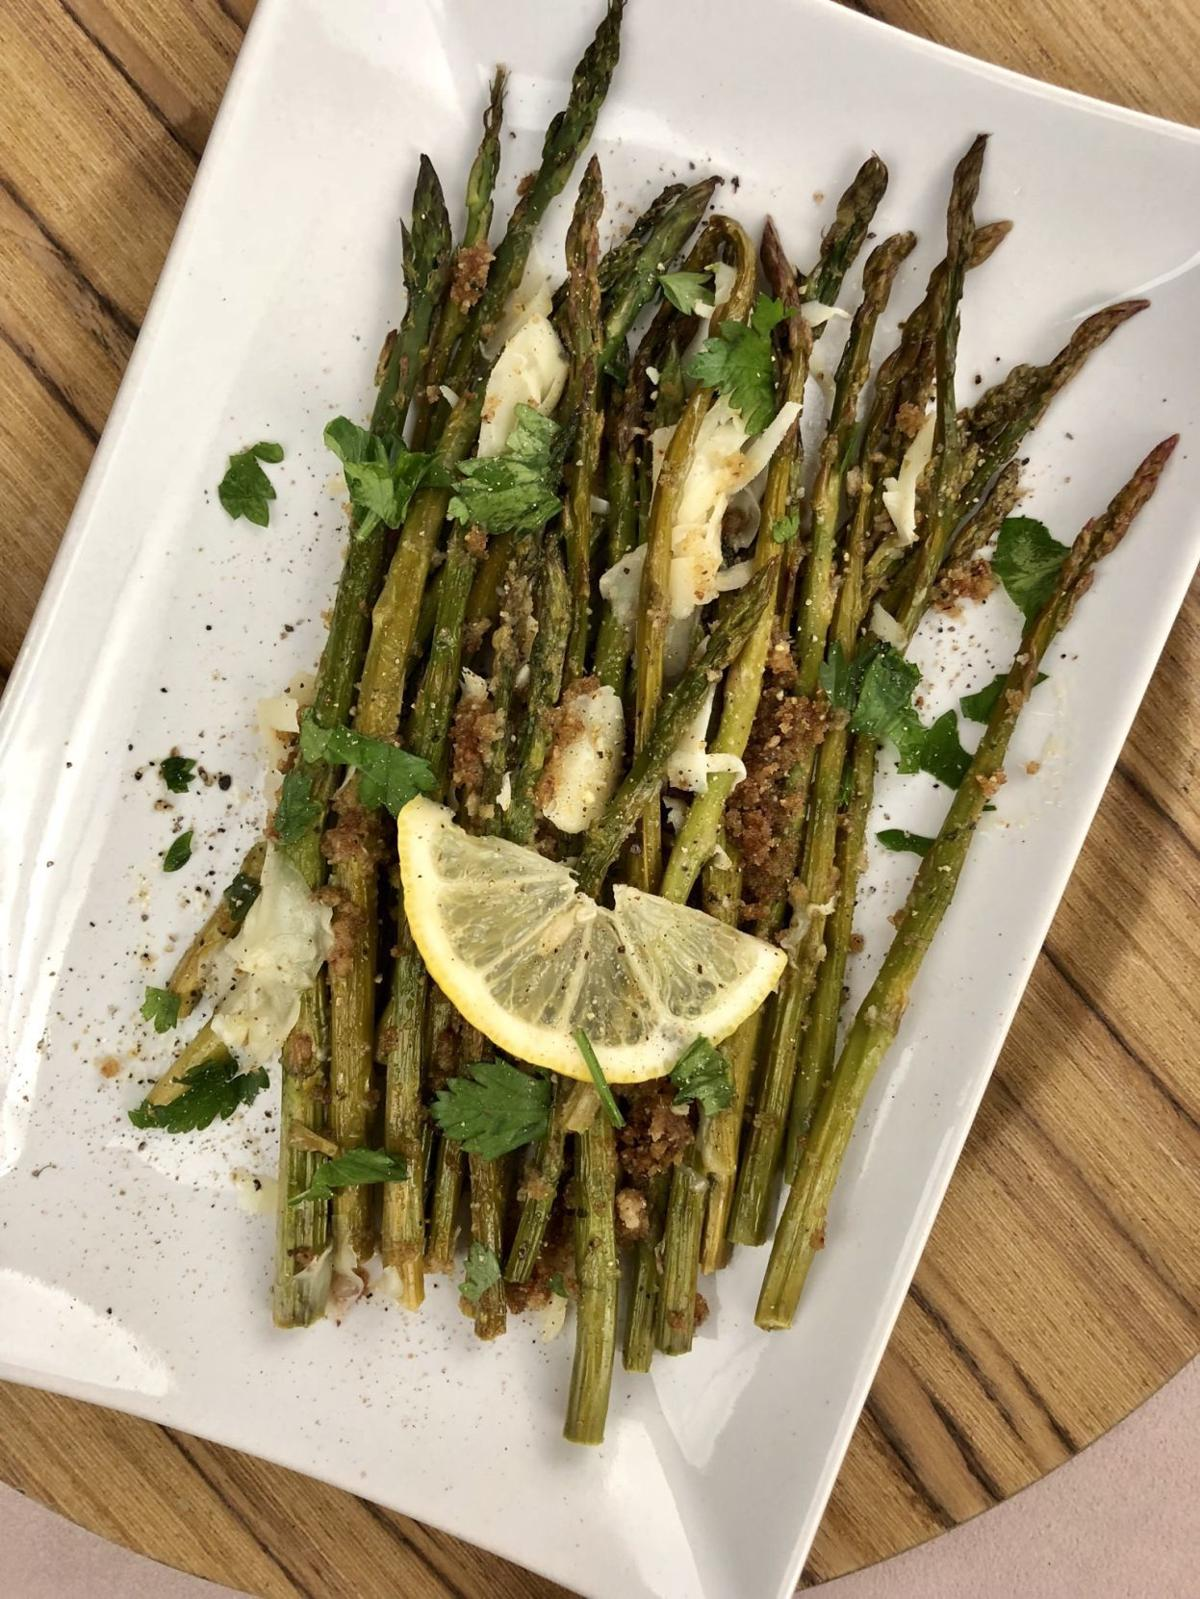 Oven Roasted Asparagus with Parmesan and Lemon 2